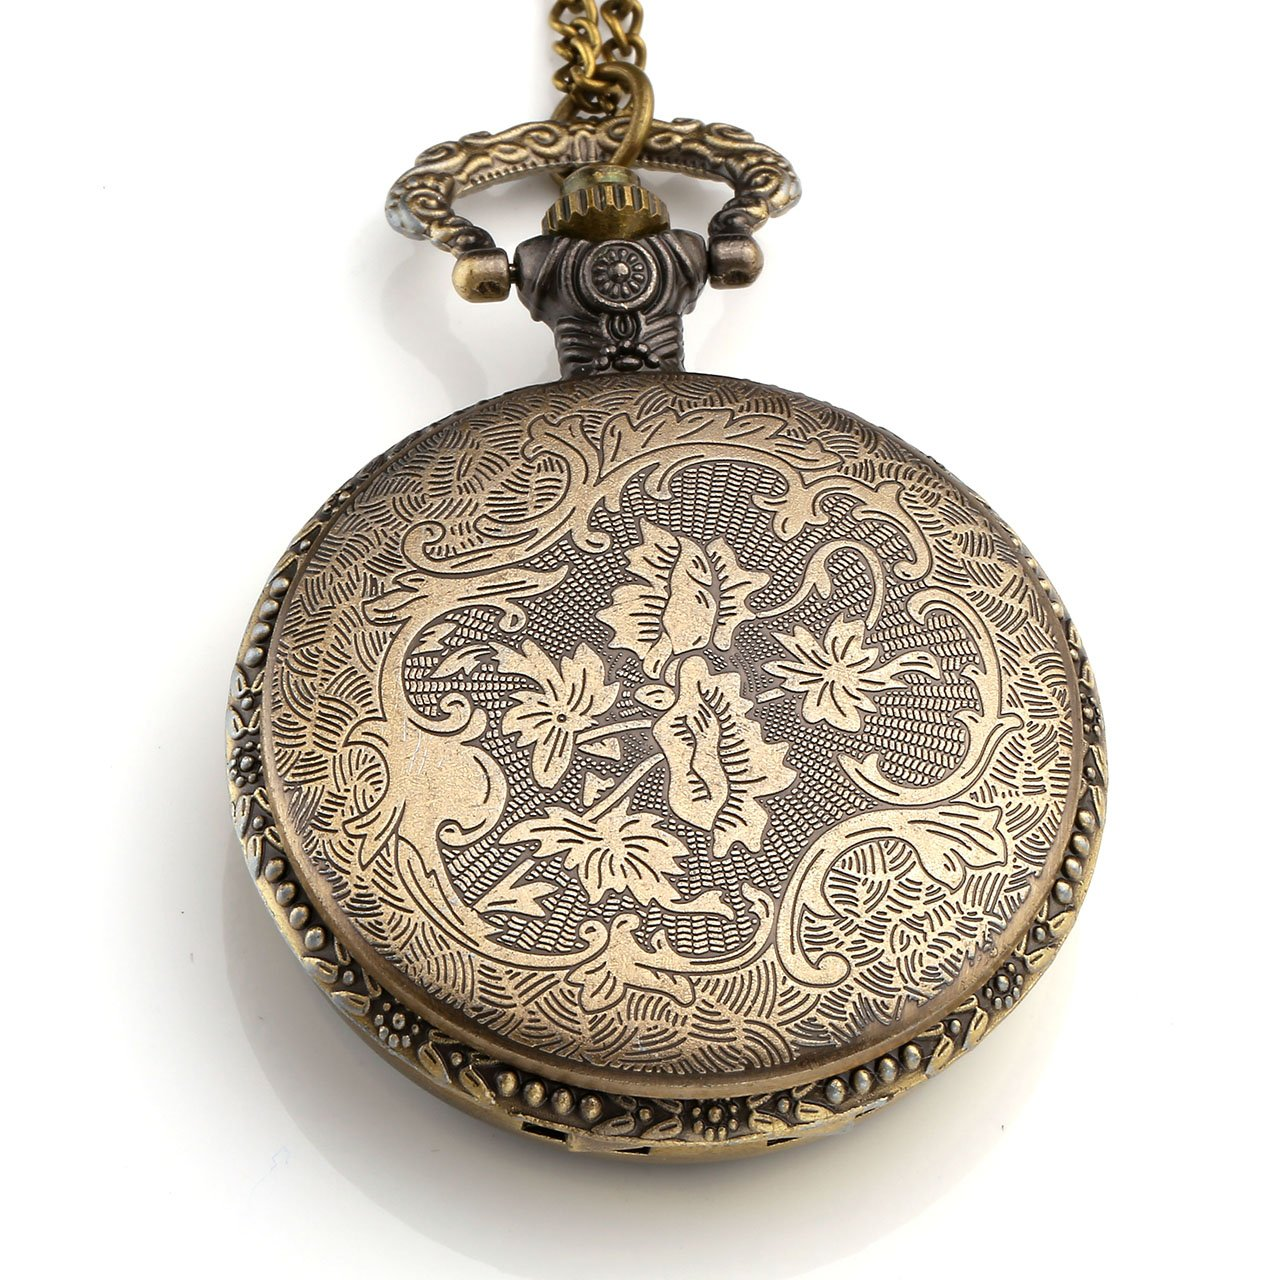 Top Plaza Unisex Antique Case Vintage Bronze Alloy Chain Quartz Pocket Watch Resin Dripping Flower